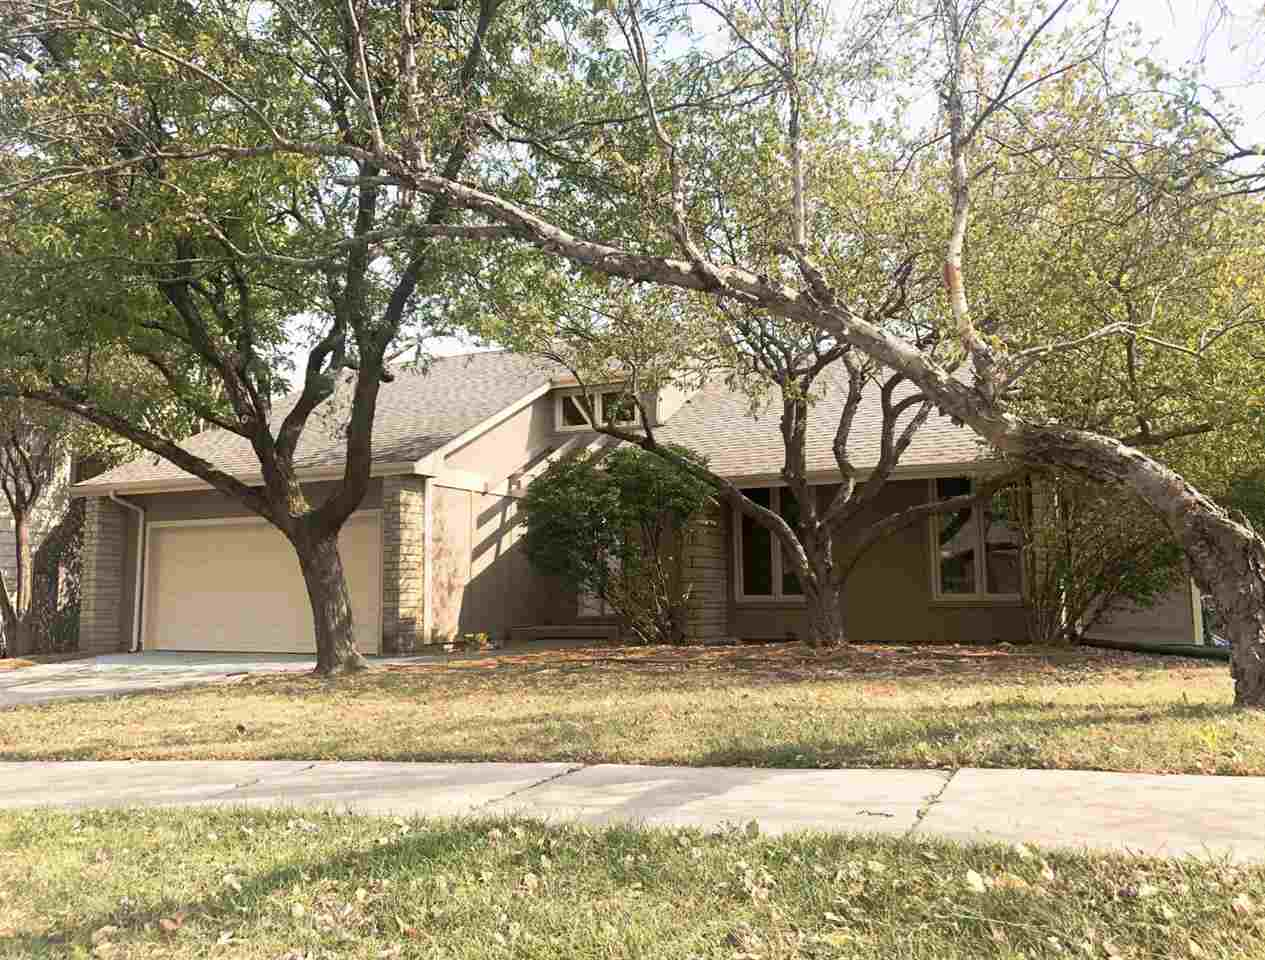 This spacious, single-family home on the East side of Wichita features both modern amenities and arc